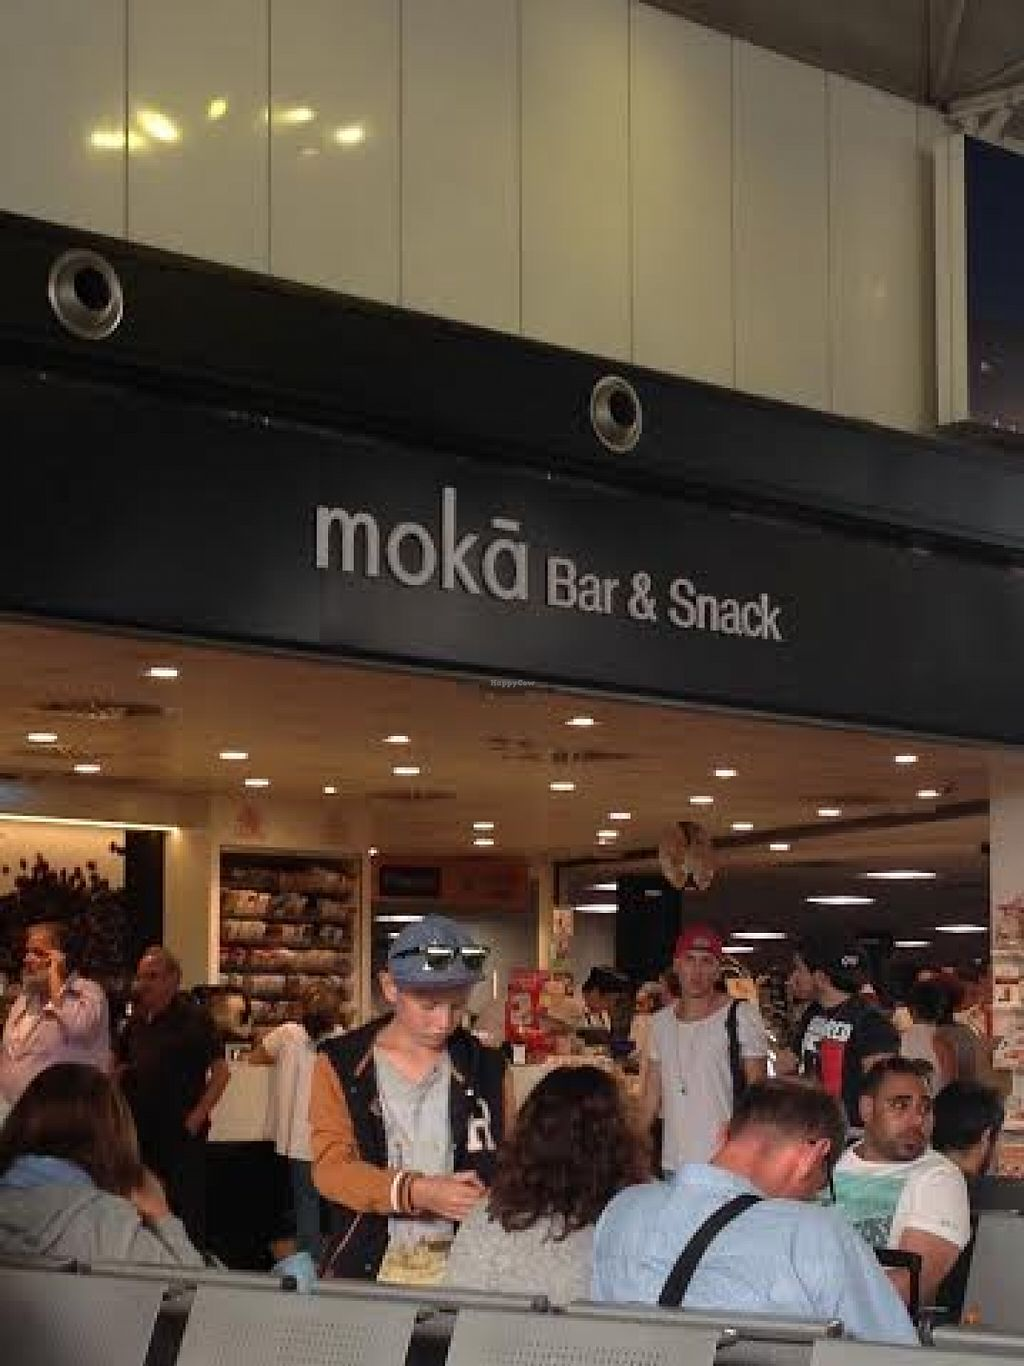 "Photo of Moka Bar and Snack  by <a href=""/members/profile/Lesley%20Anne%20Jeavons"">Lesley Anne Jeavons</a> <br/>Moka at Rome Airport <br/> August 14, 2015  - <a href='/contact/abuse/image/62009/113590'>Report</a>"